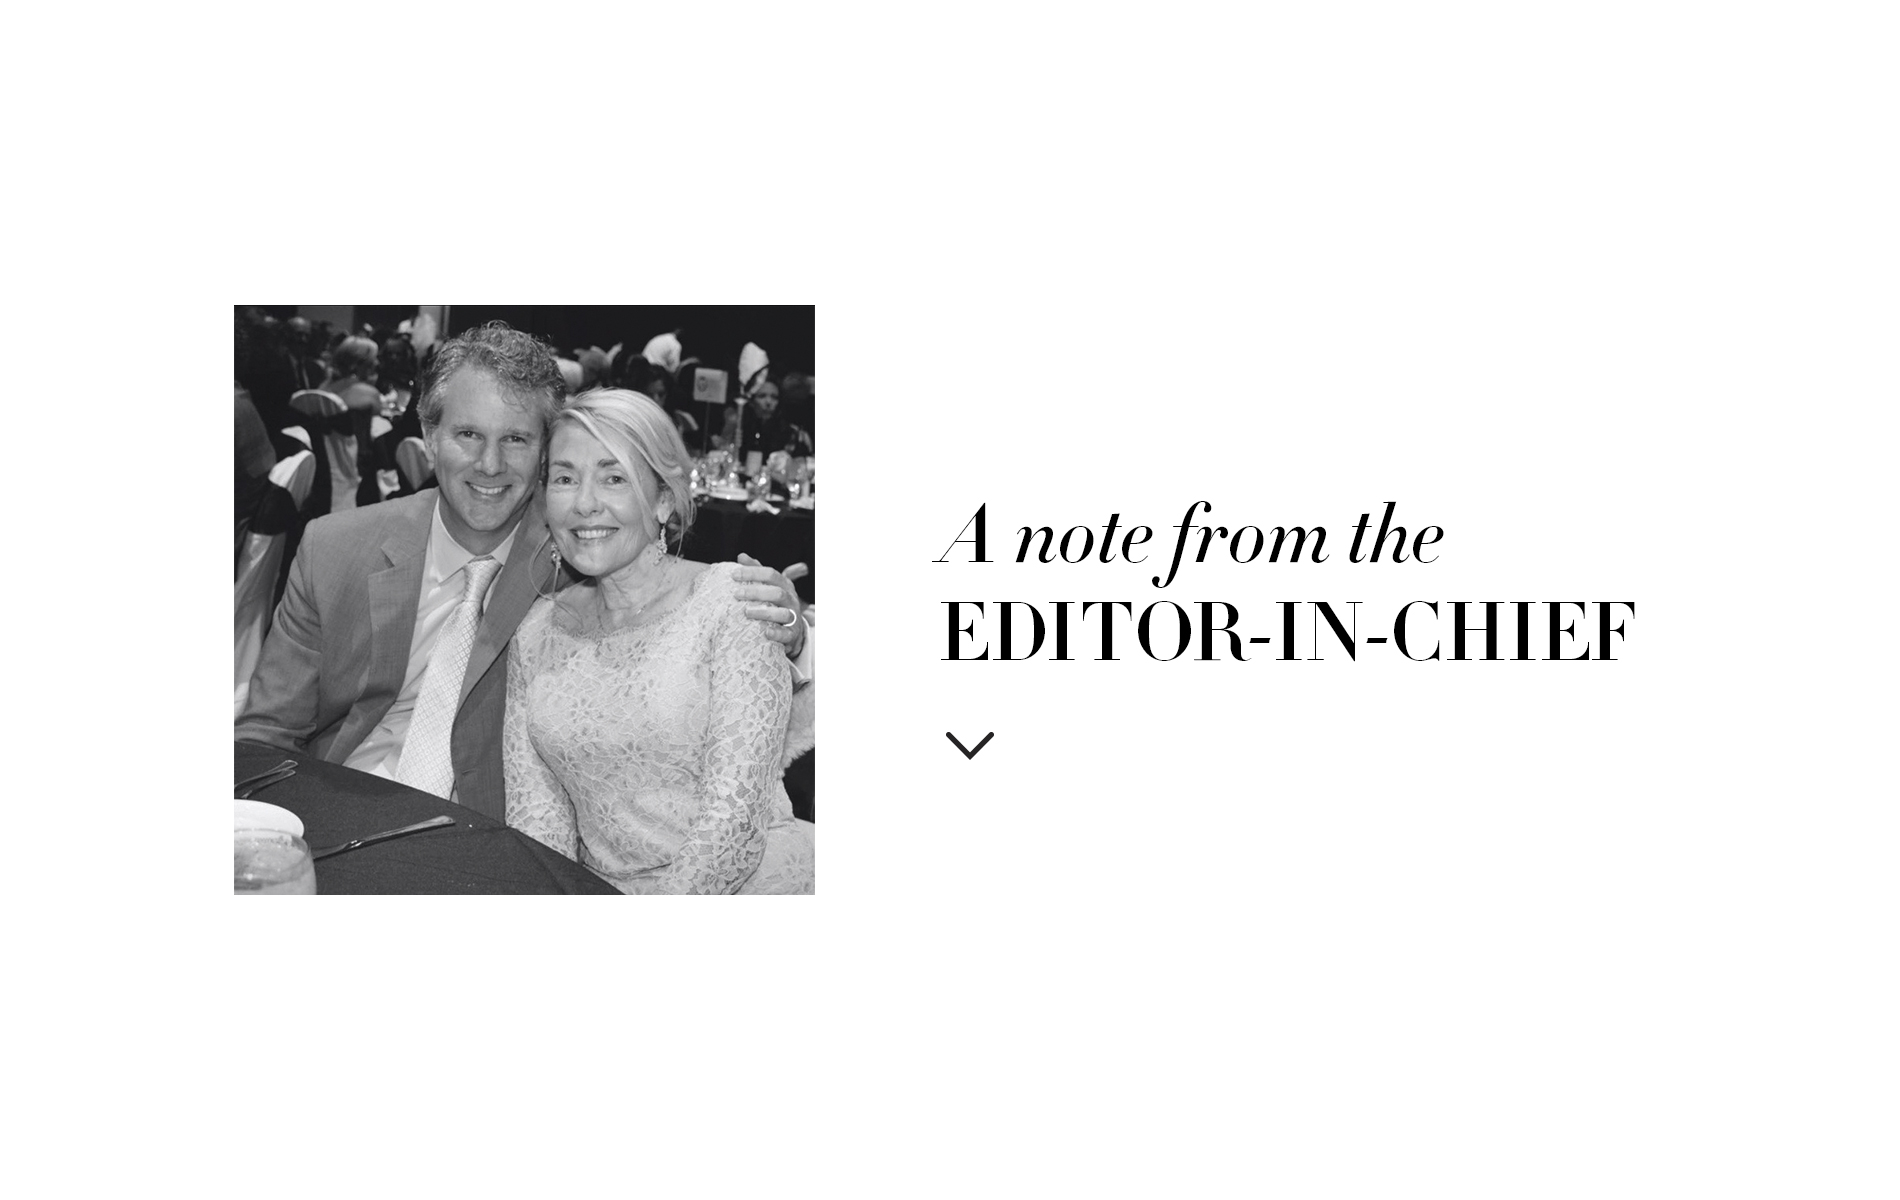 Lisa Burwell Editor-in-chief note, VIE Magazine February 2019 Luxury Homes & Technology issue